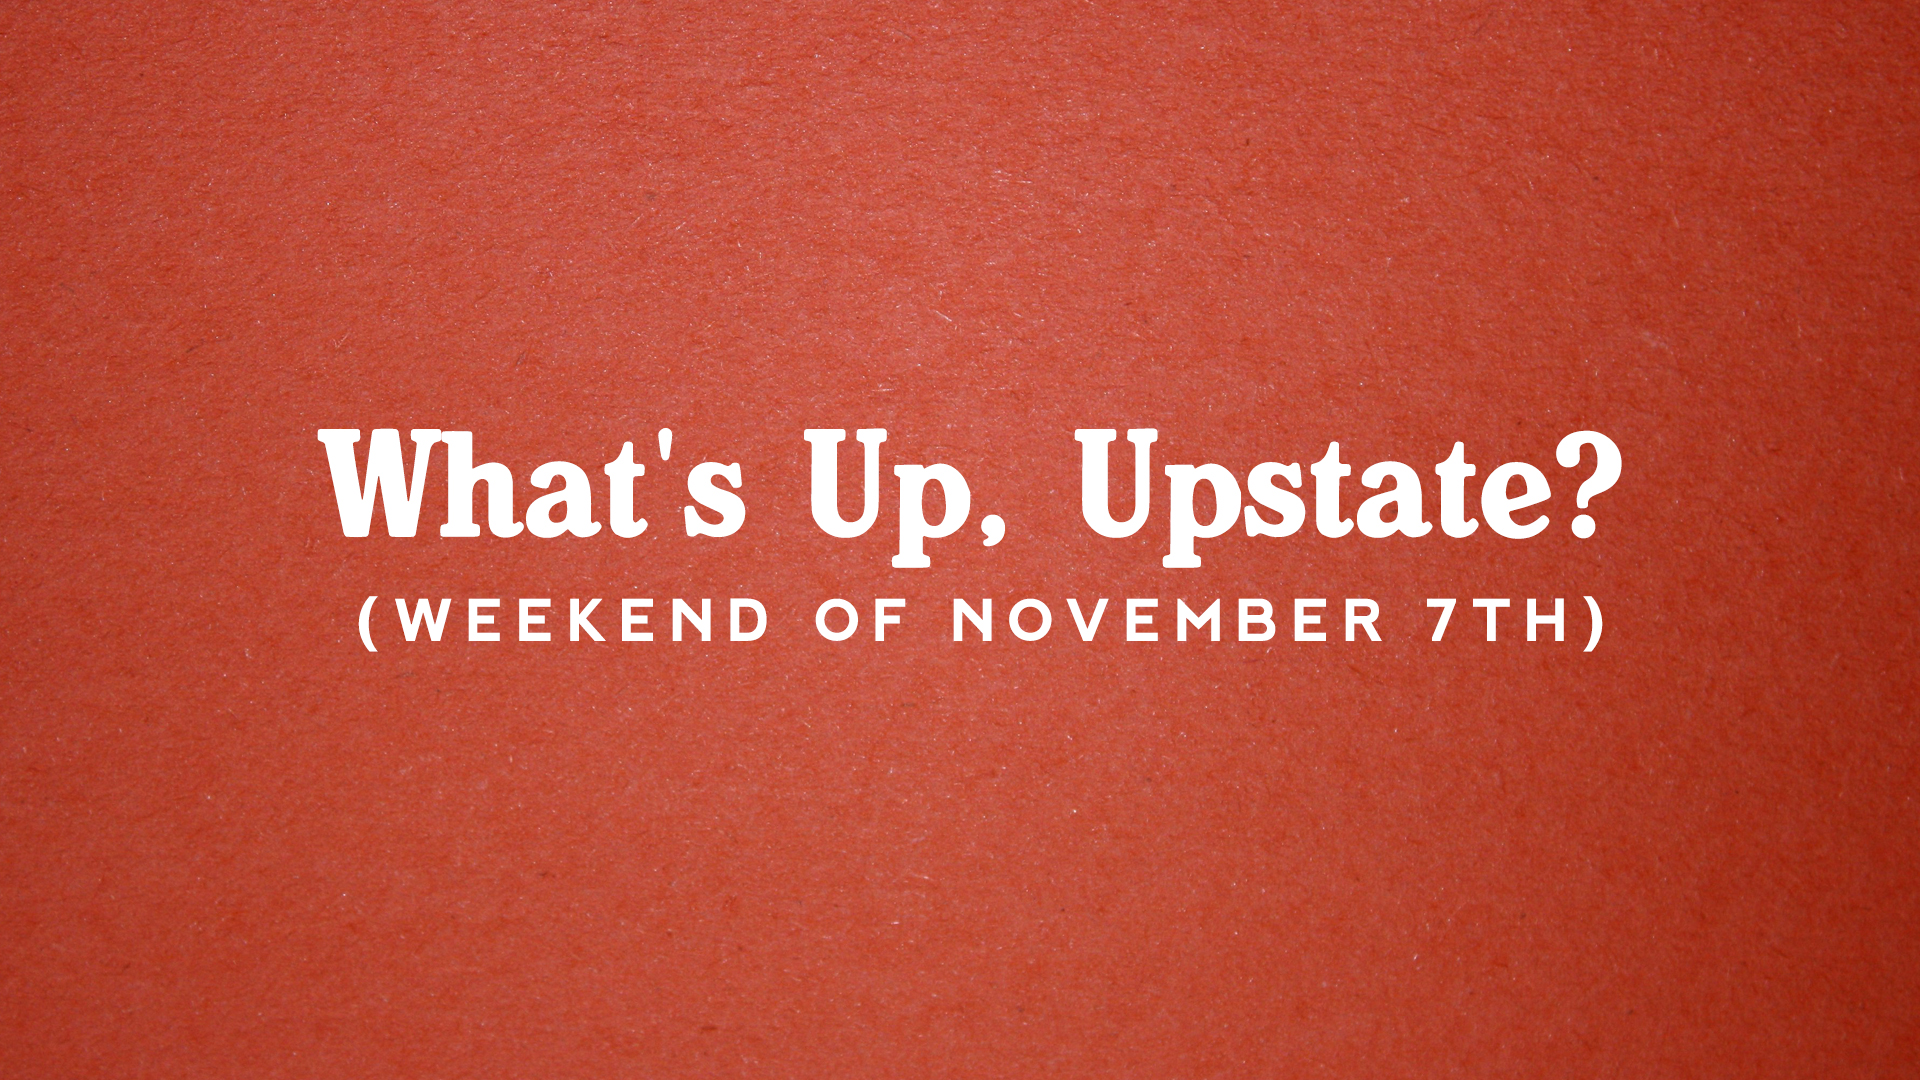 What's Up, Upstate? – Weekend of 11/7 – 11/10